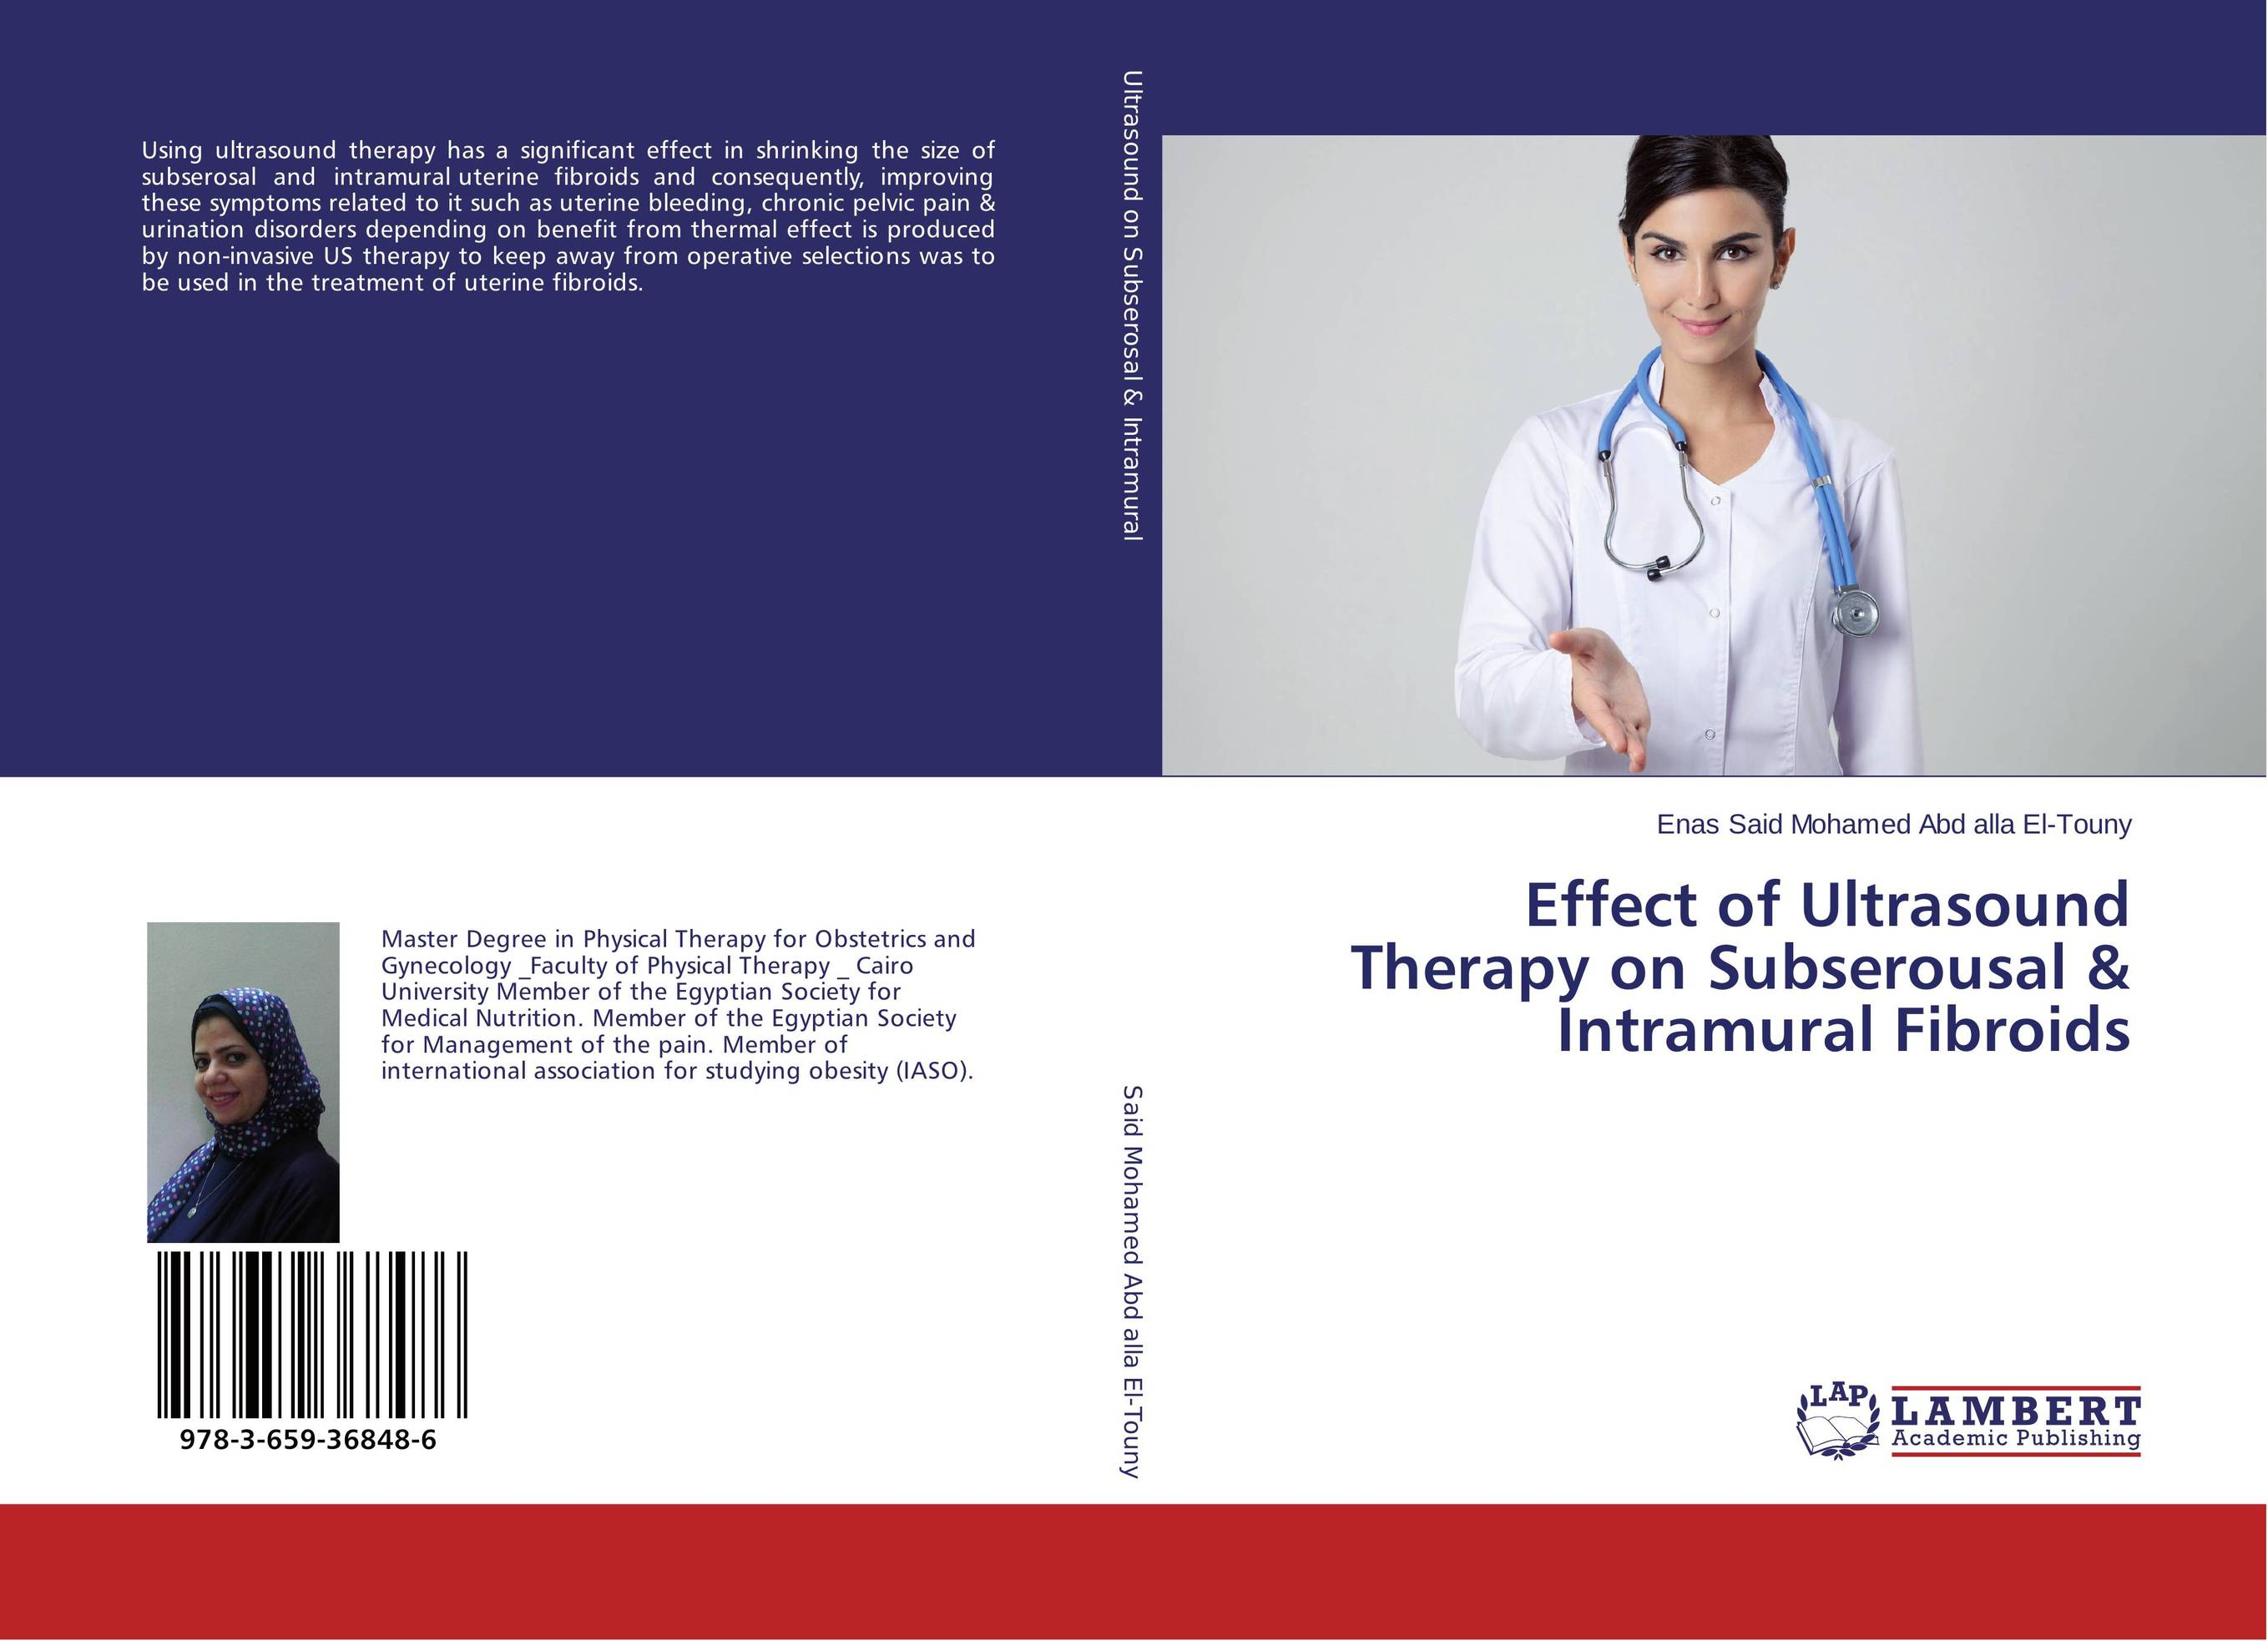 Effect of Ultrasound Therapy on Subserousal & Intramural Fibroids